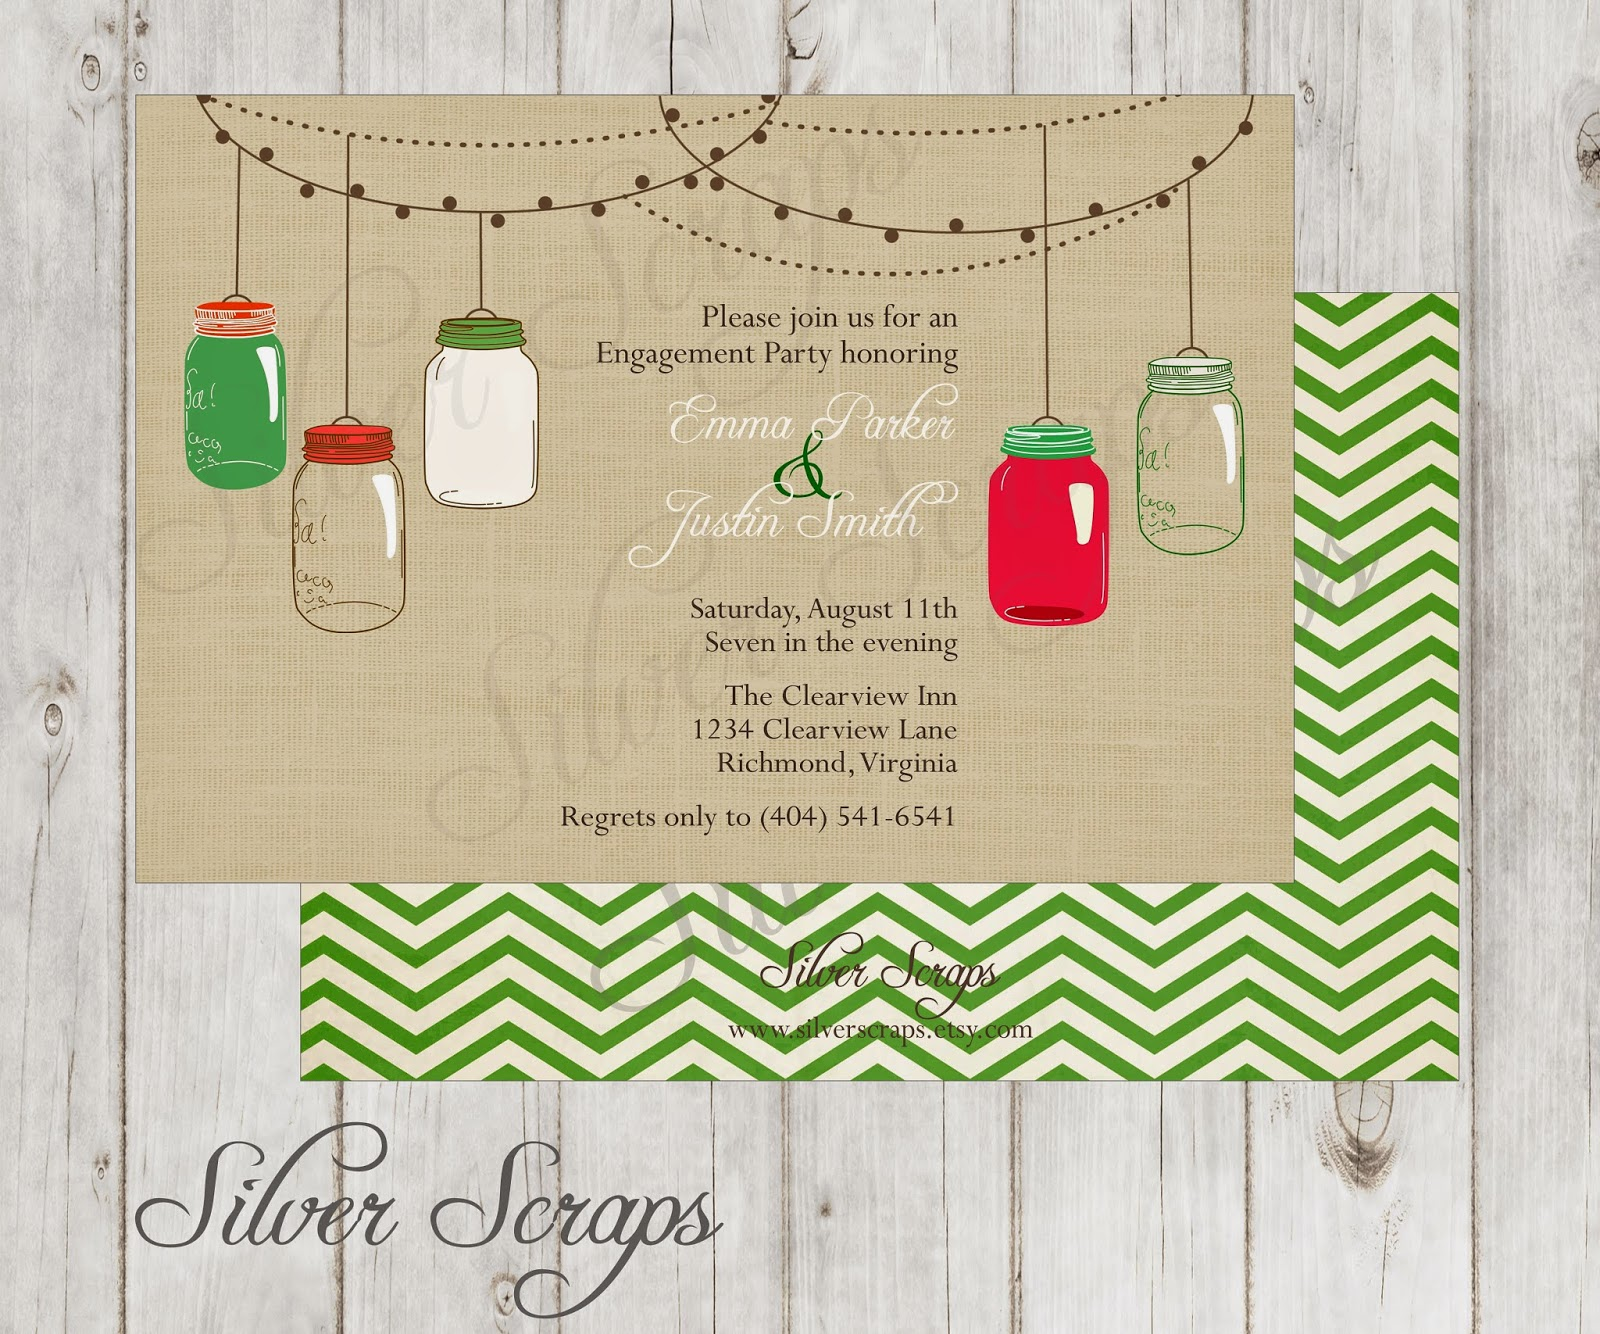 Vintage Hanging Christmas Mason Jars - Custom Holiday Rehearsal Dinner, Wedding, Bridal, Baby Shower, or Engagement Party Invitation - Green red linen burlap rustic barn hanging string lights floral flowers